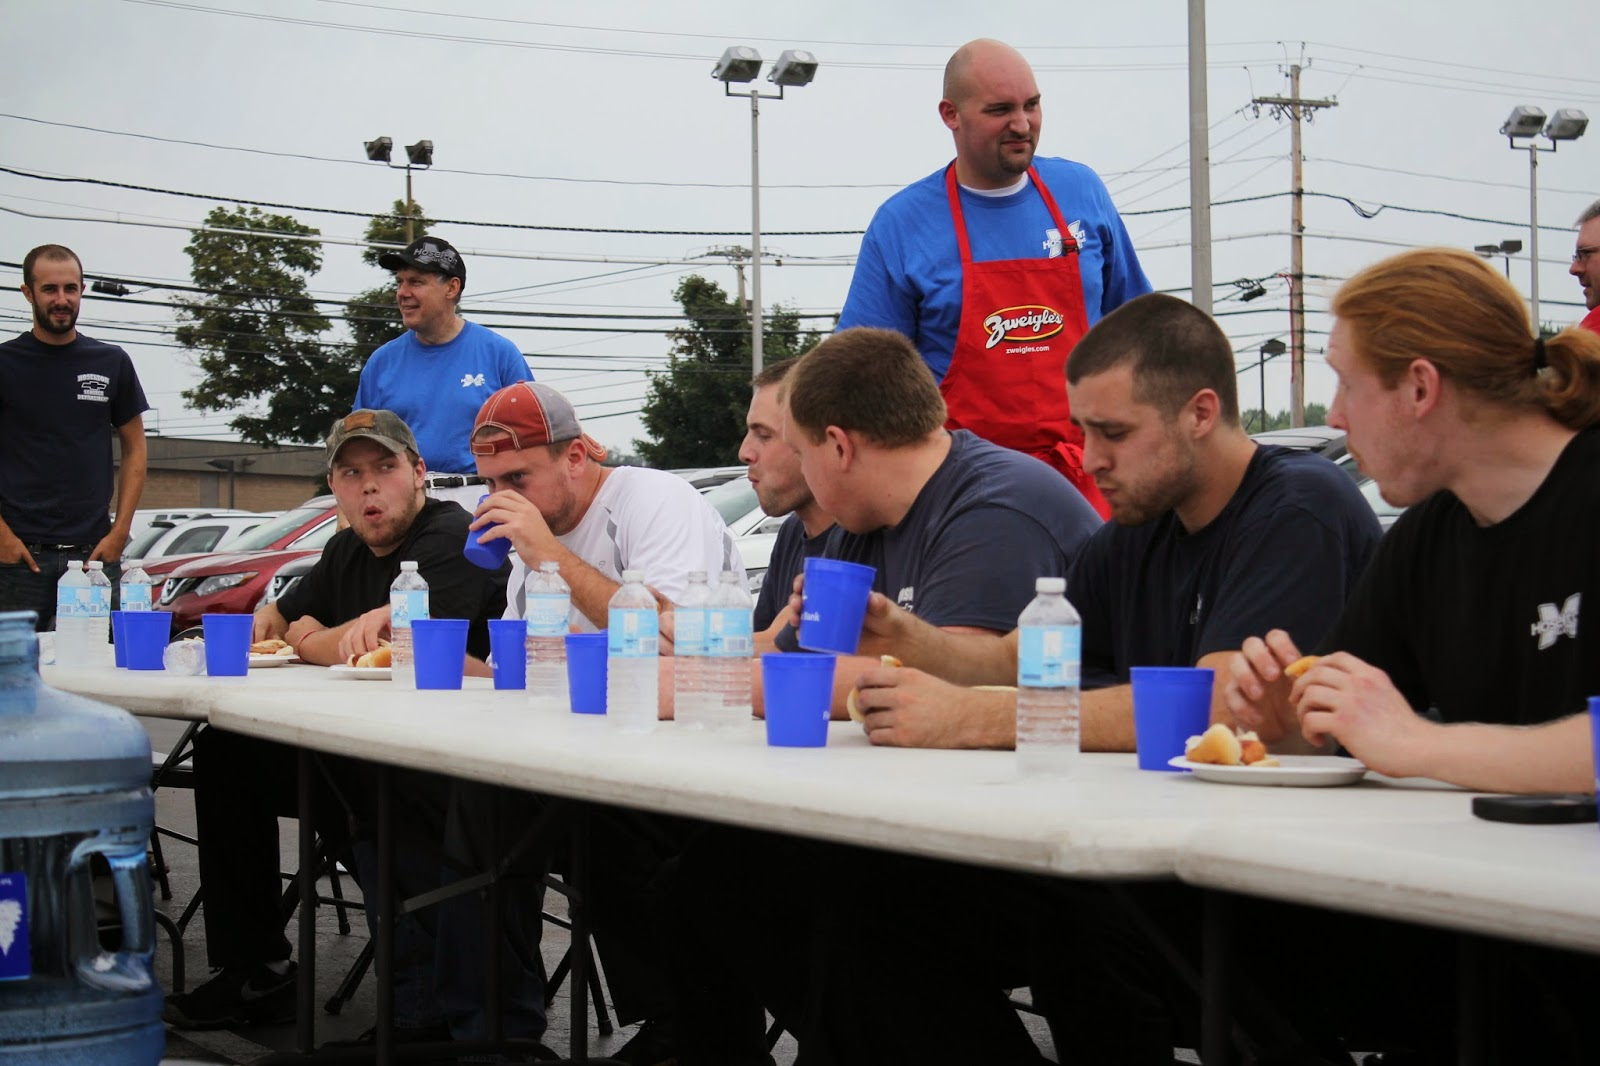 Rochester Hot Dog Eating Contest at Hoselton Auto Mall! Courtesy of Zwiegles